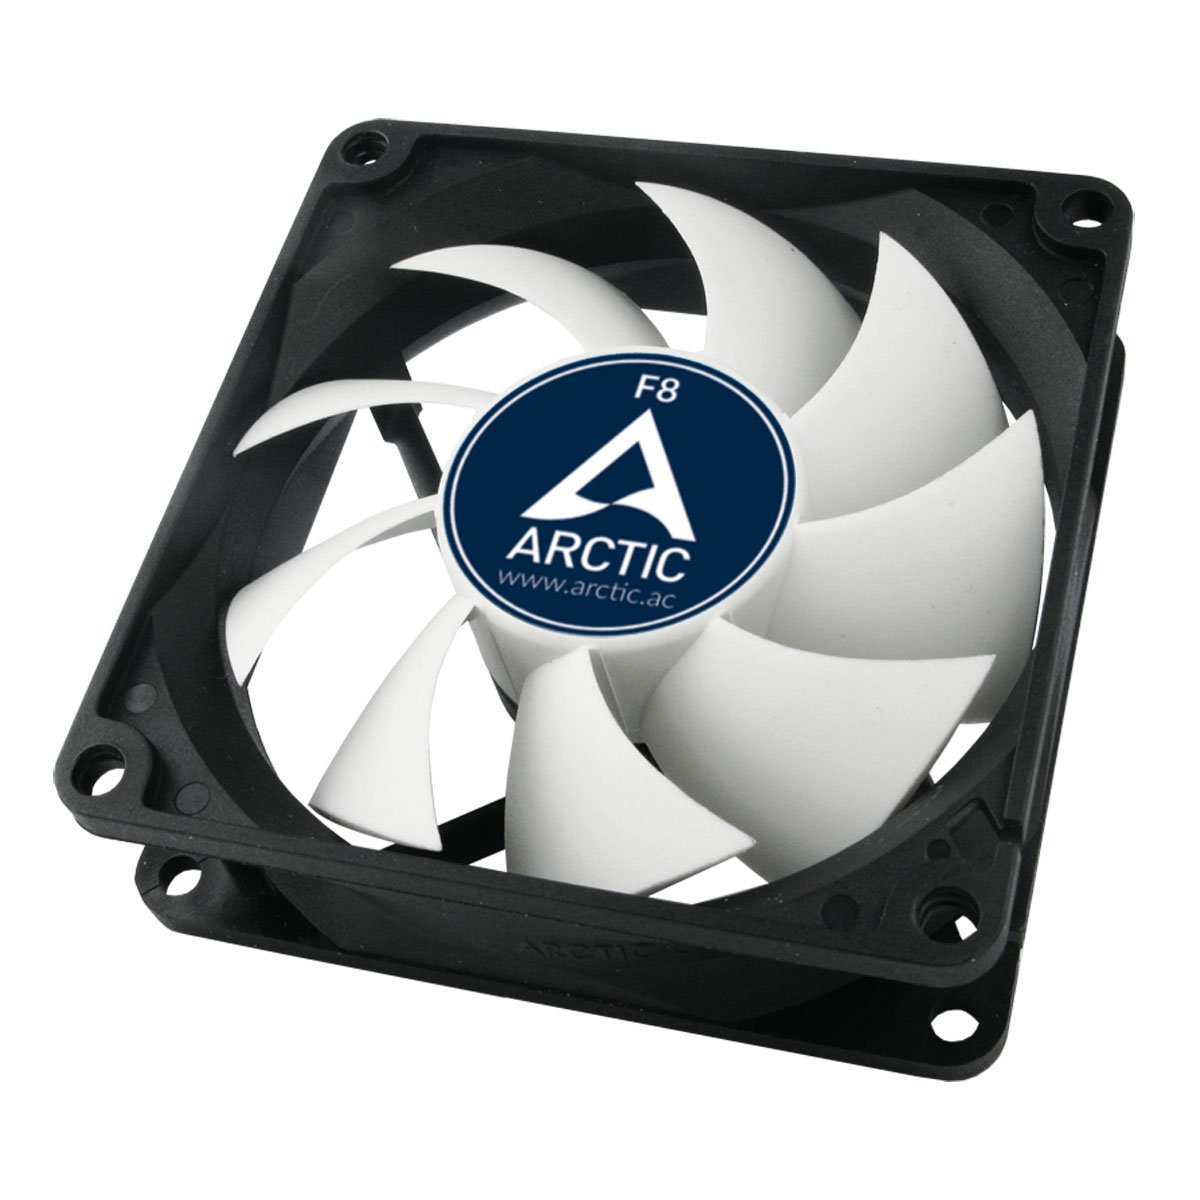 Silent Cooler with Standard Case I Almost inaudible Ultra-Quiet 80 mm Case Fan ARCTIC F8 Silent Push- or Pull Configuration Possible